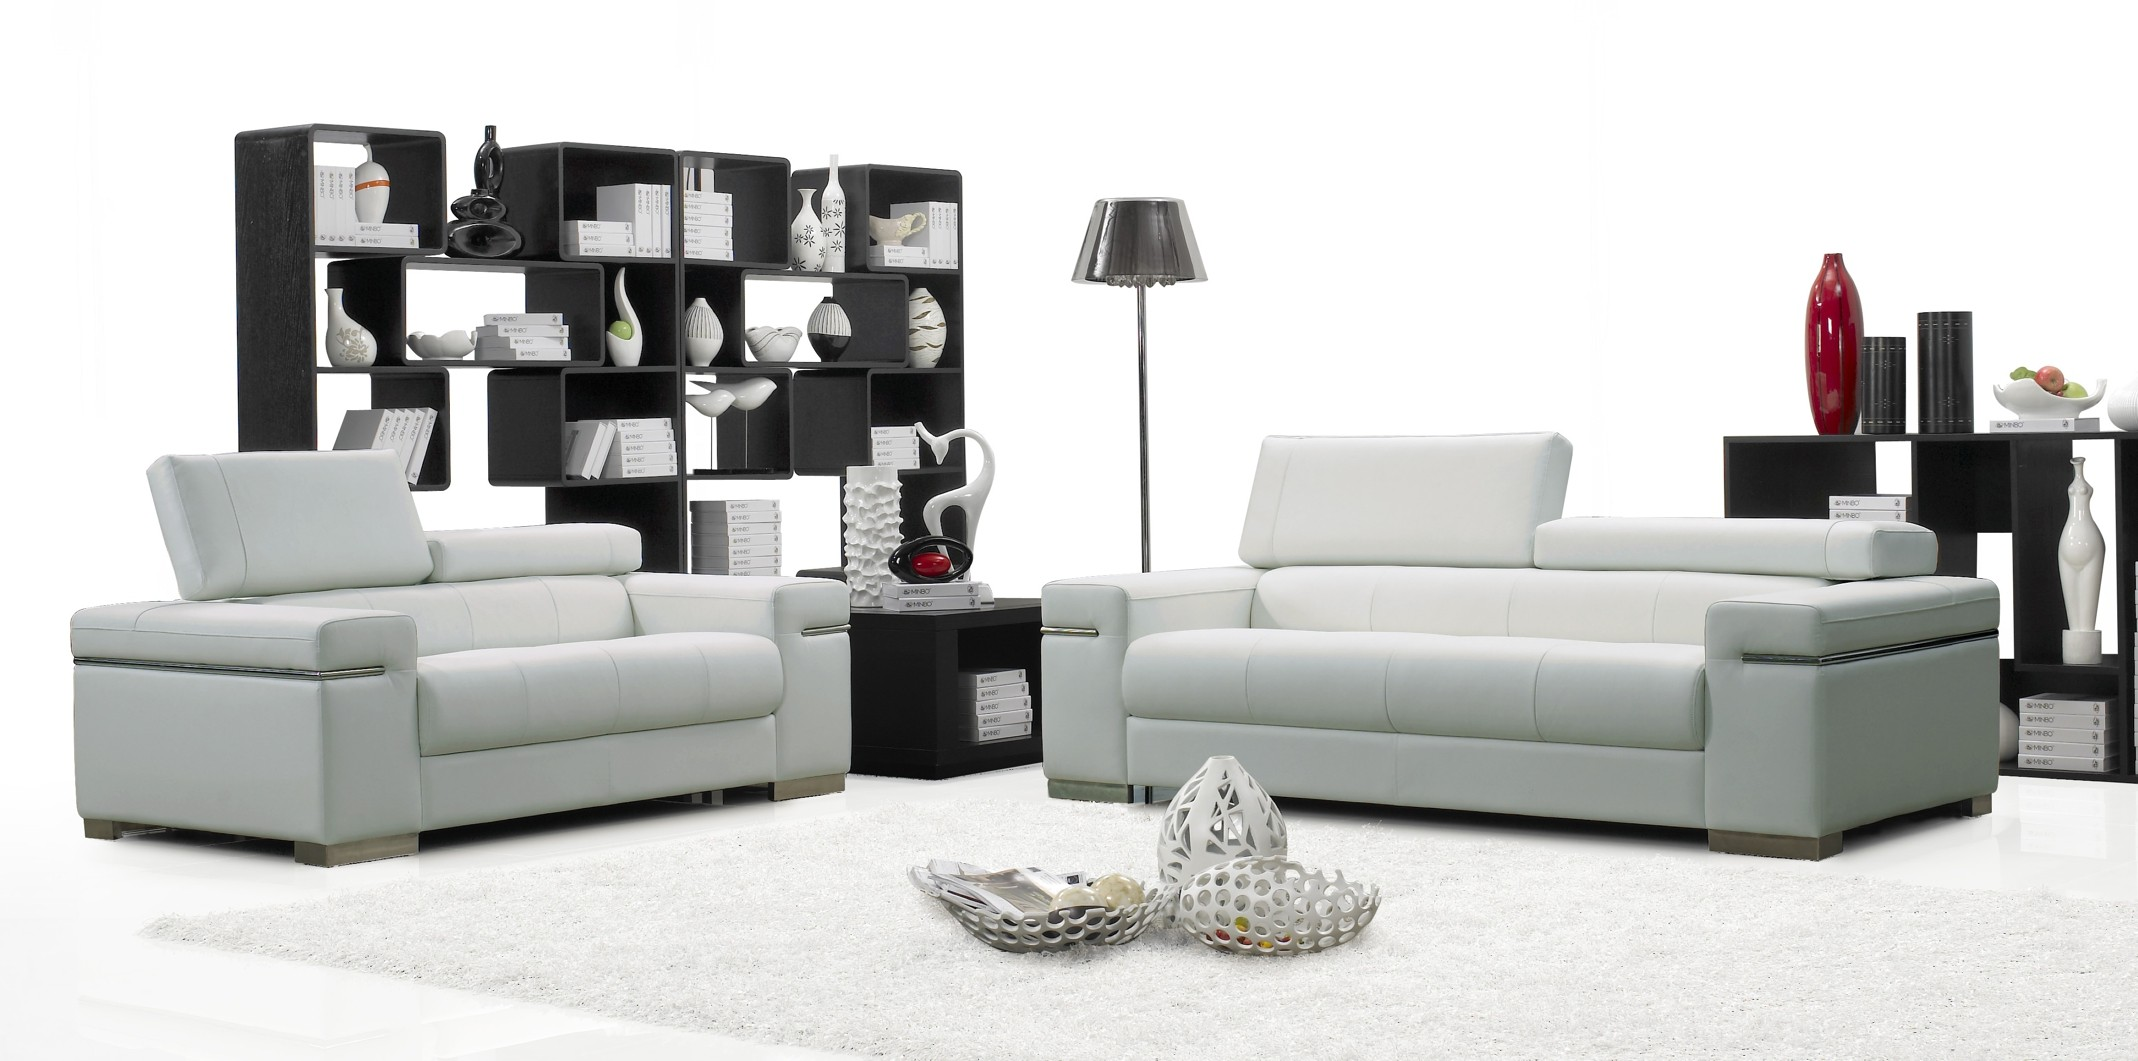 True modern furniture online homesfeed for Stylish furniture